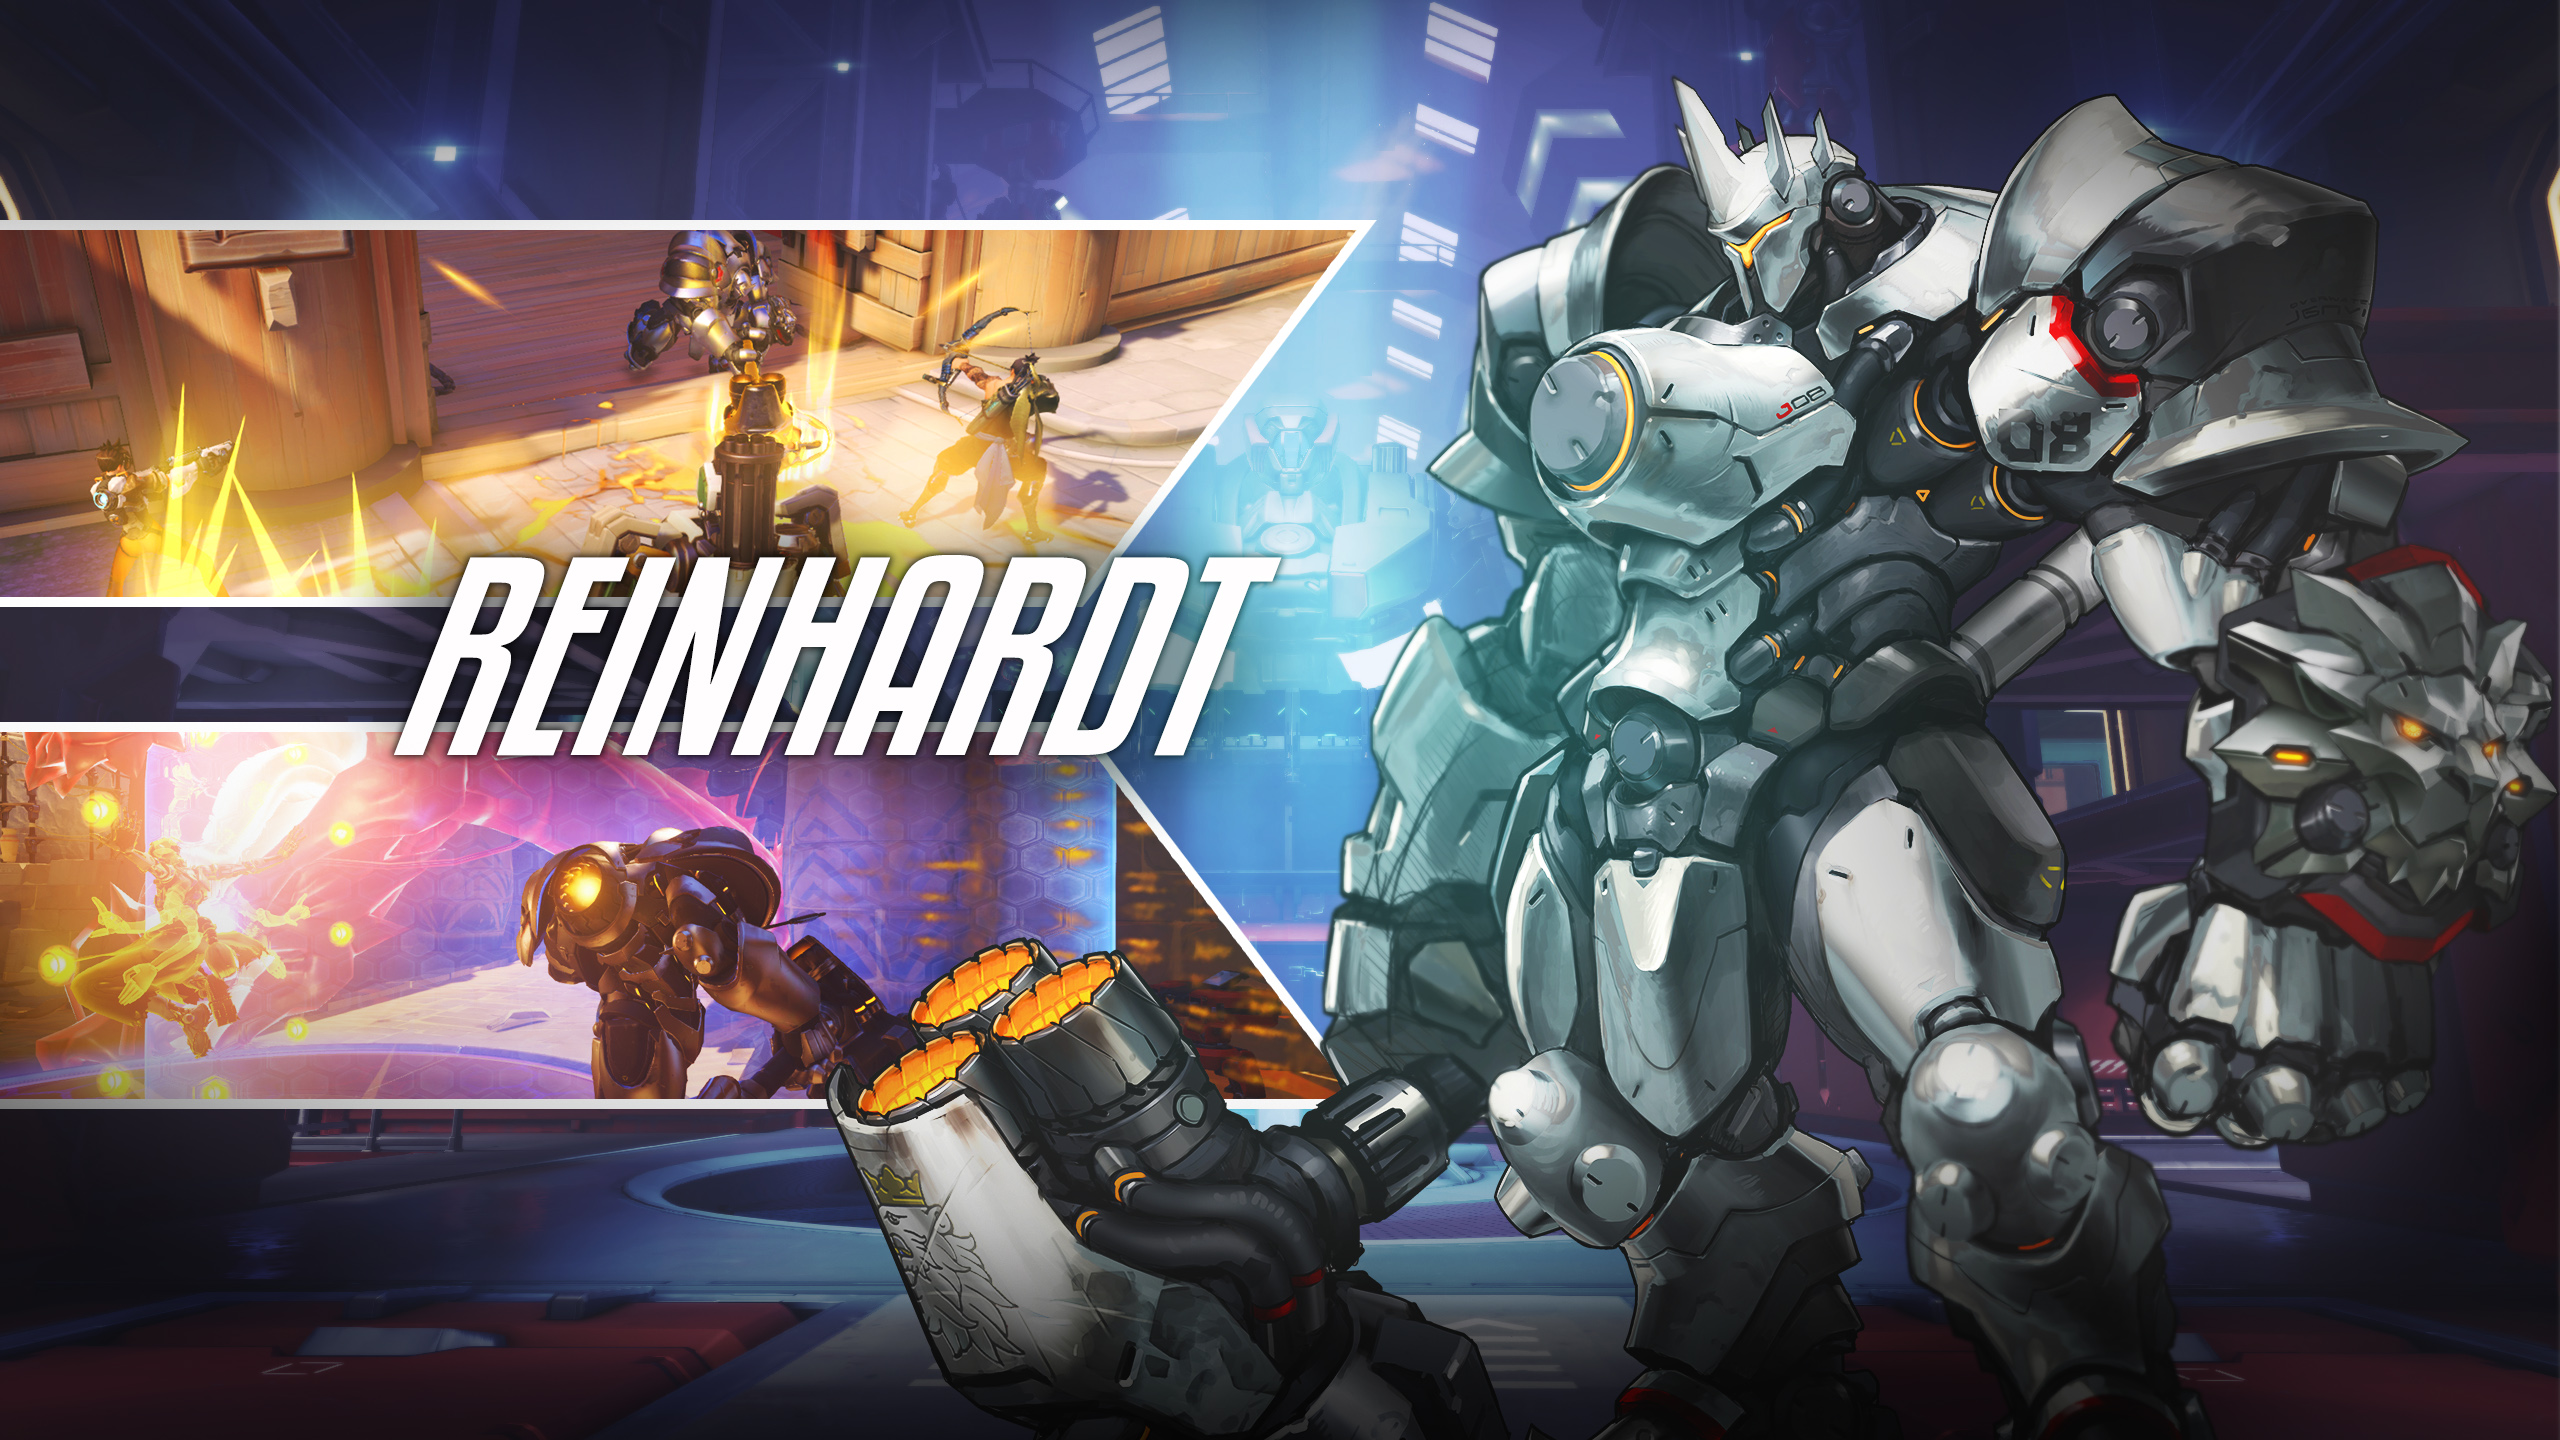 Reinhardt Overwatch Wallpapers HD Wallpapers 2560x1440